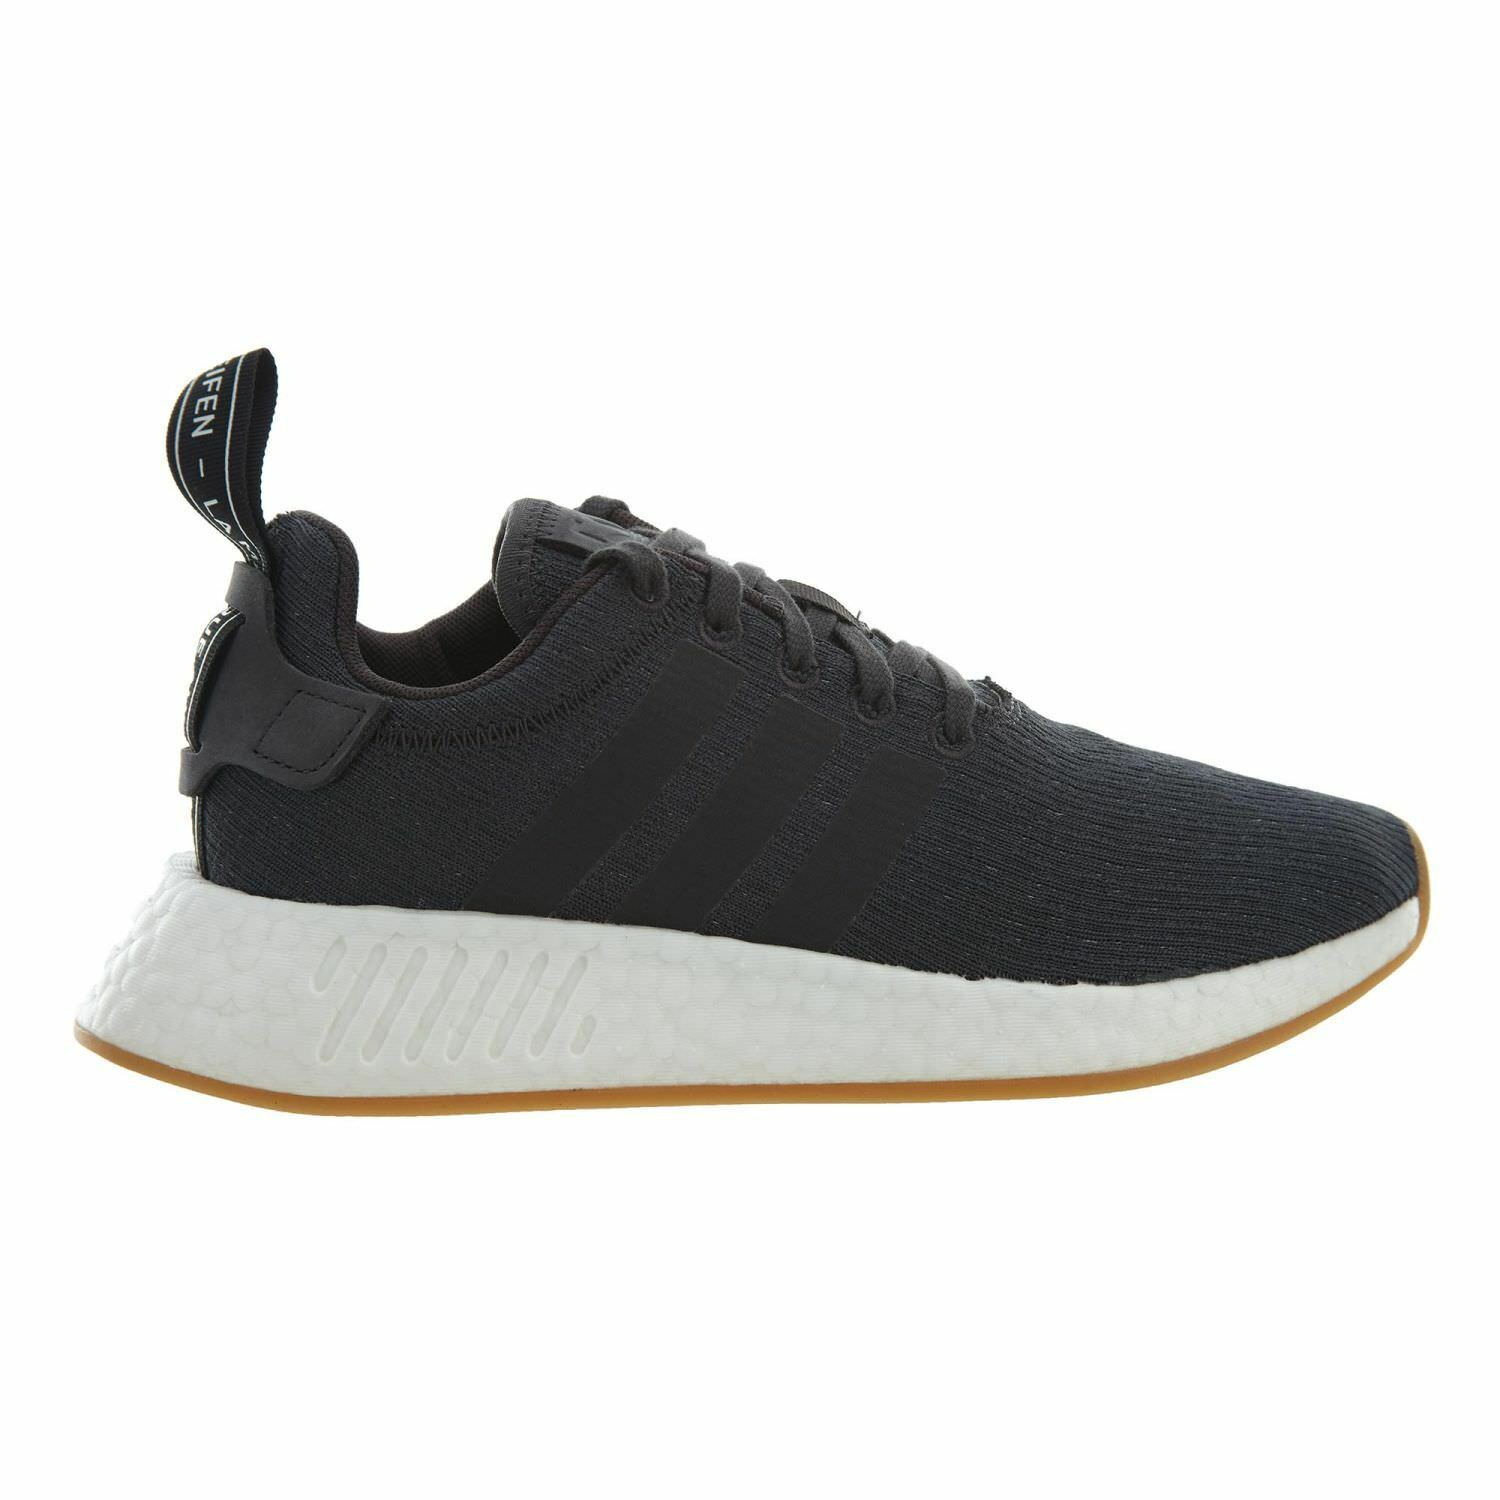 Adidas Nmd_R2 Mens CQ2400 Grey Black White Knit Boost Running Shoes Comfortable